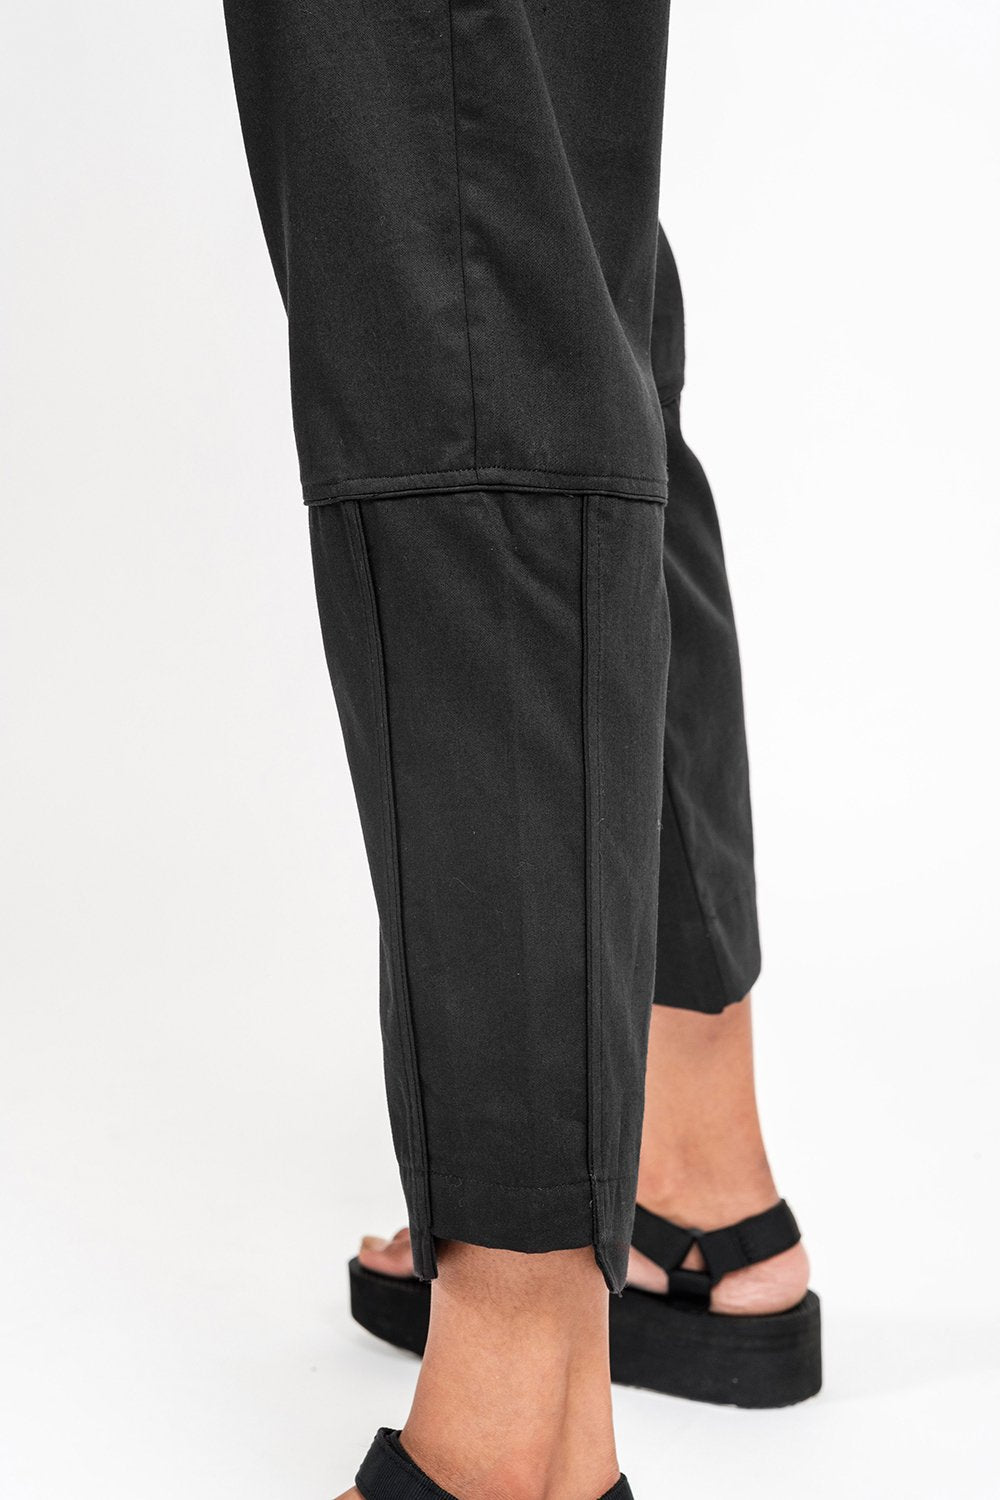 Black Cropped Unisex 'Axis' Trousers